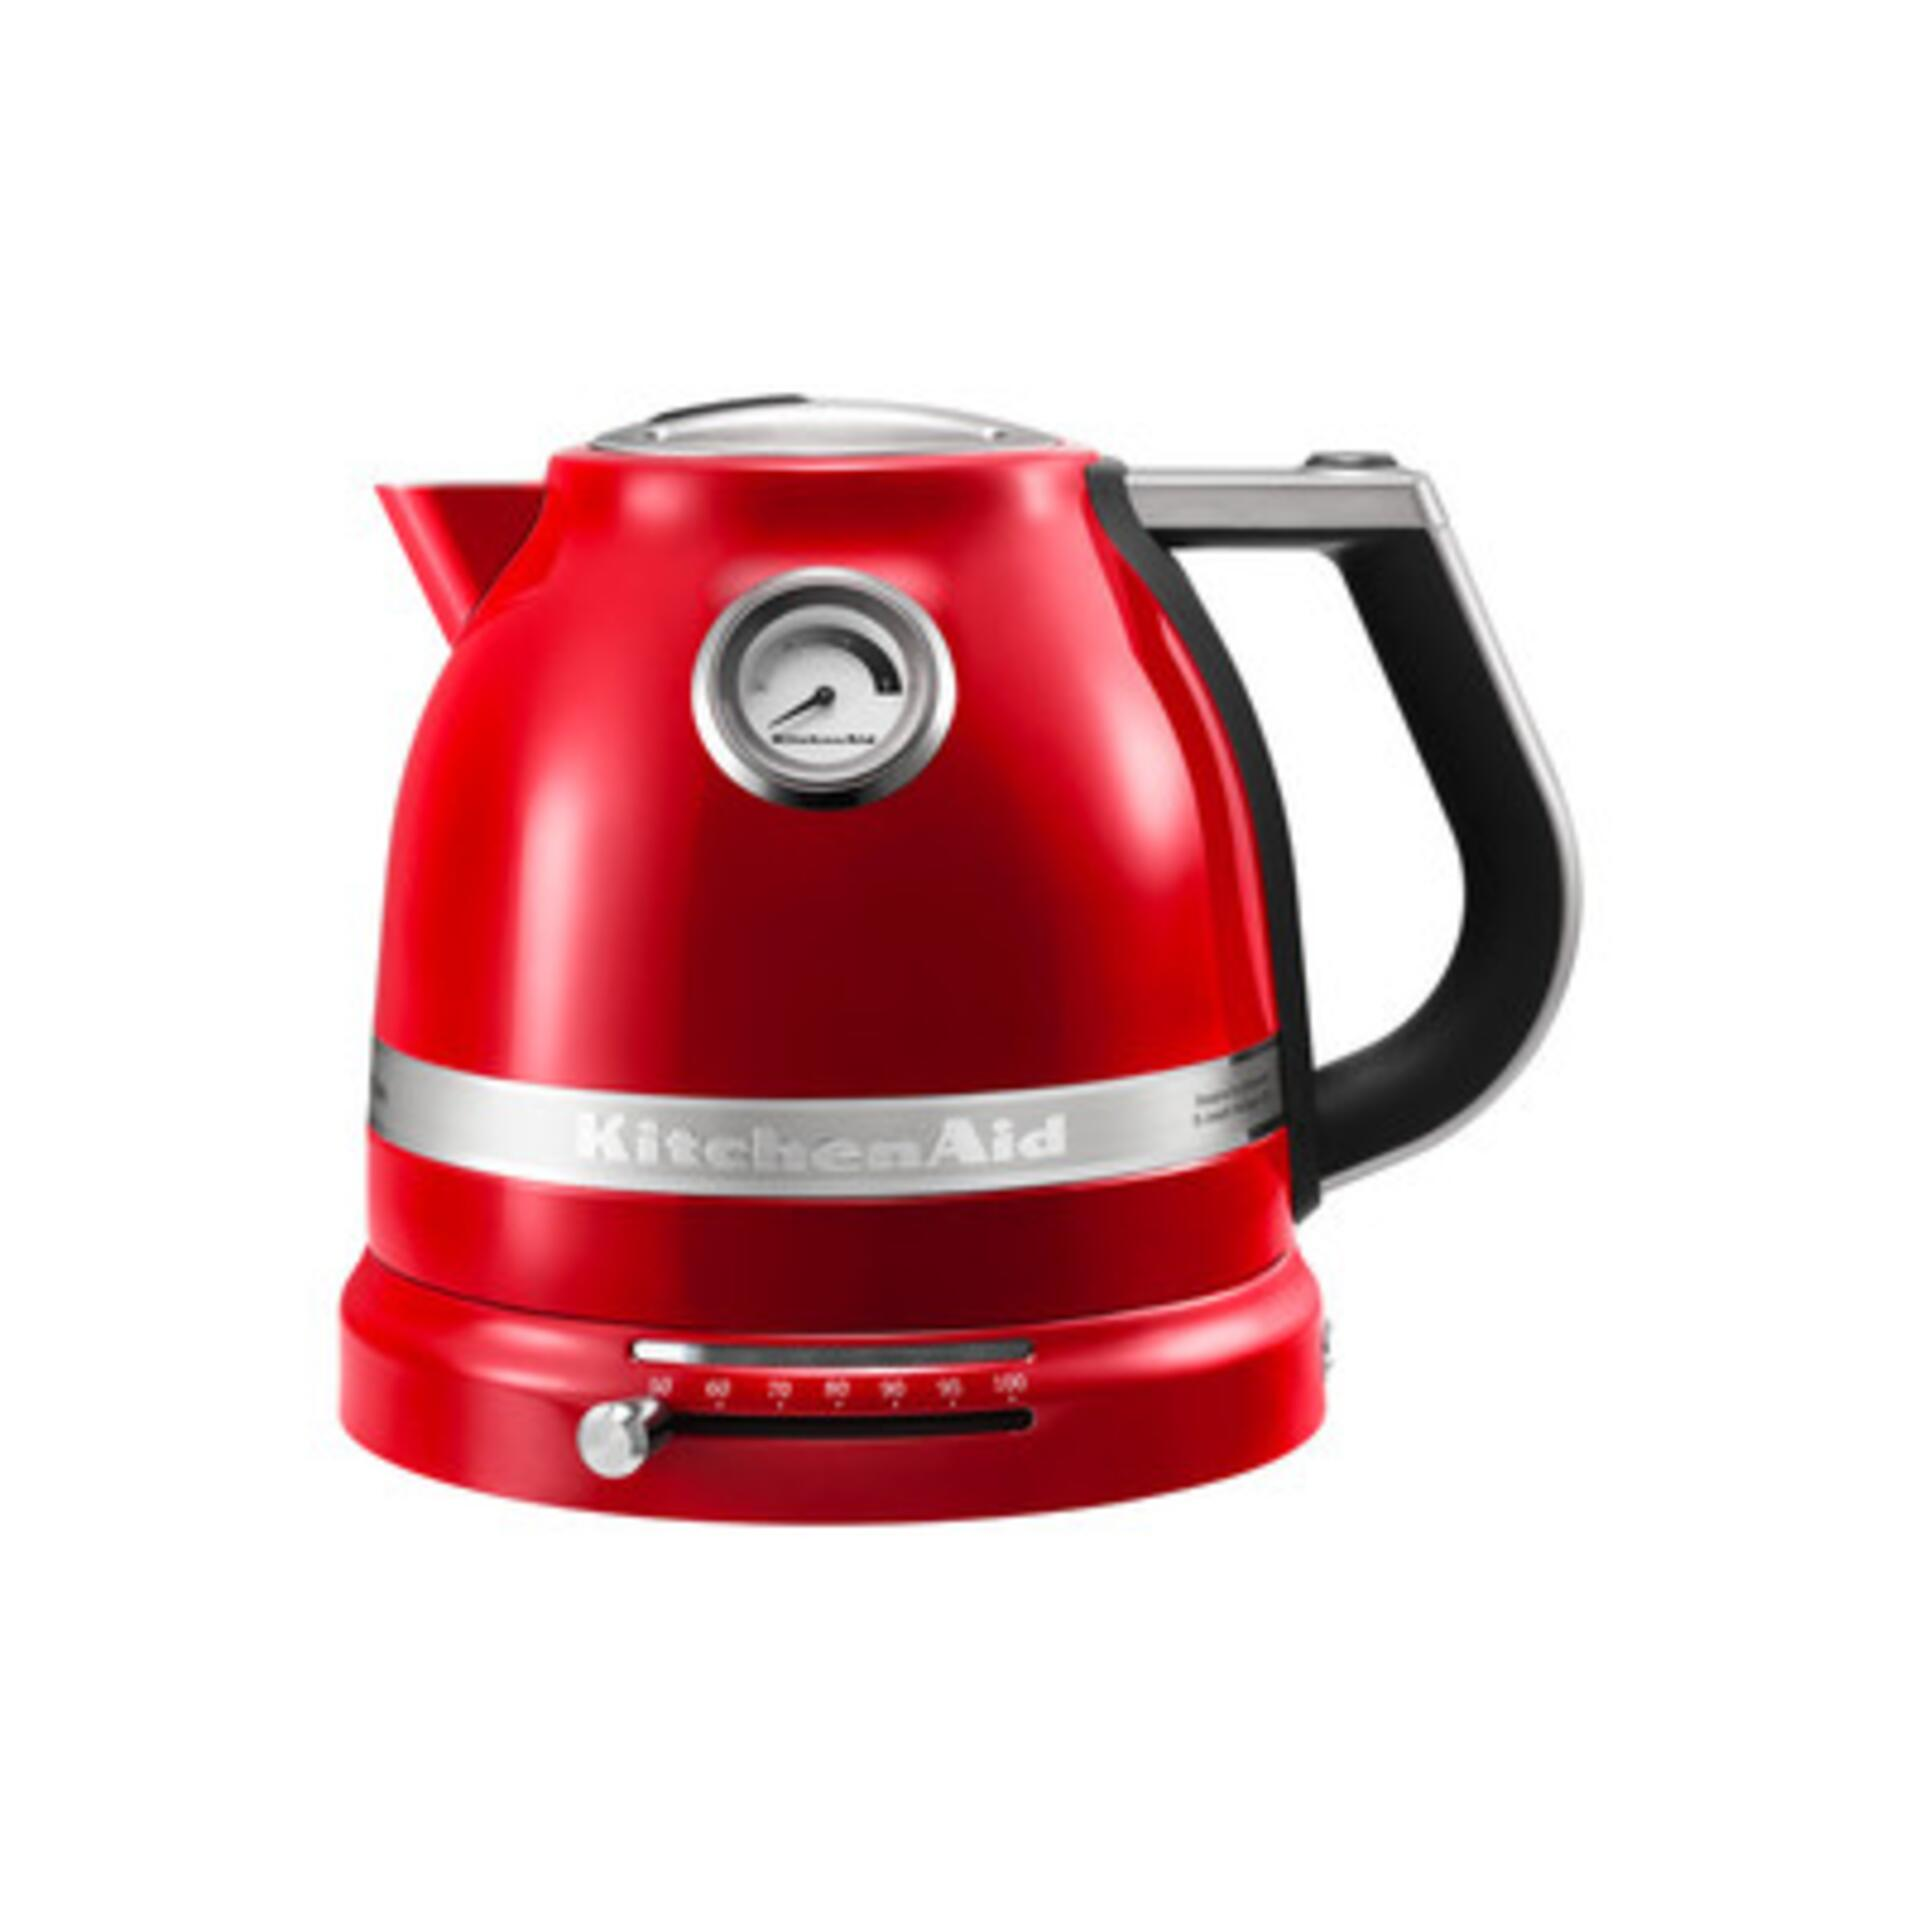 Kitchenaid Artisan Wasserkocher Empire Red 5KEK1522EER